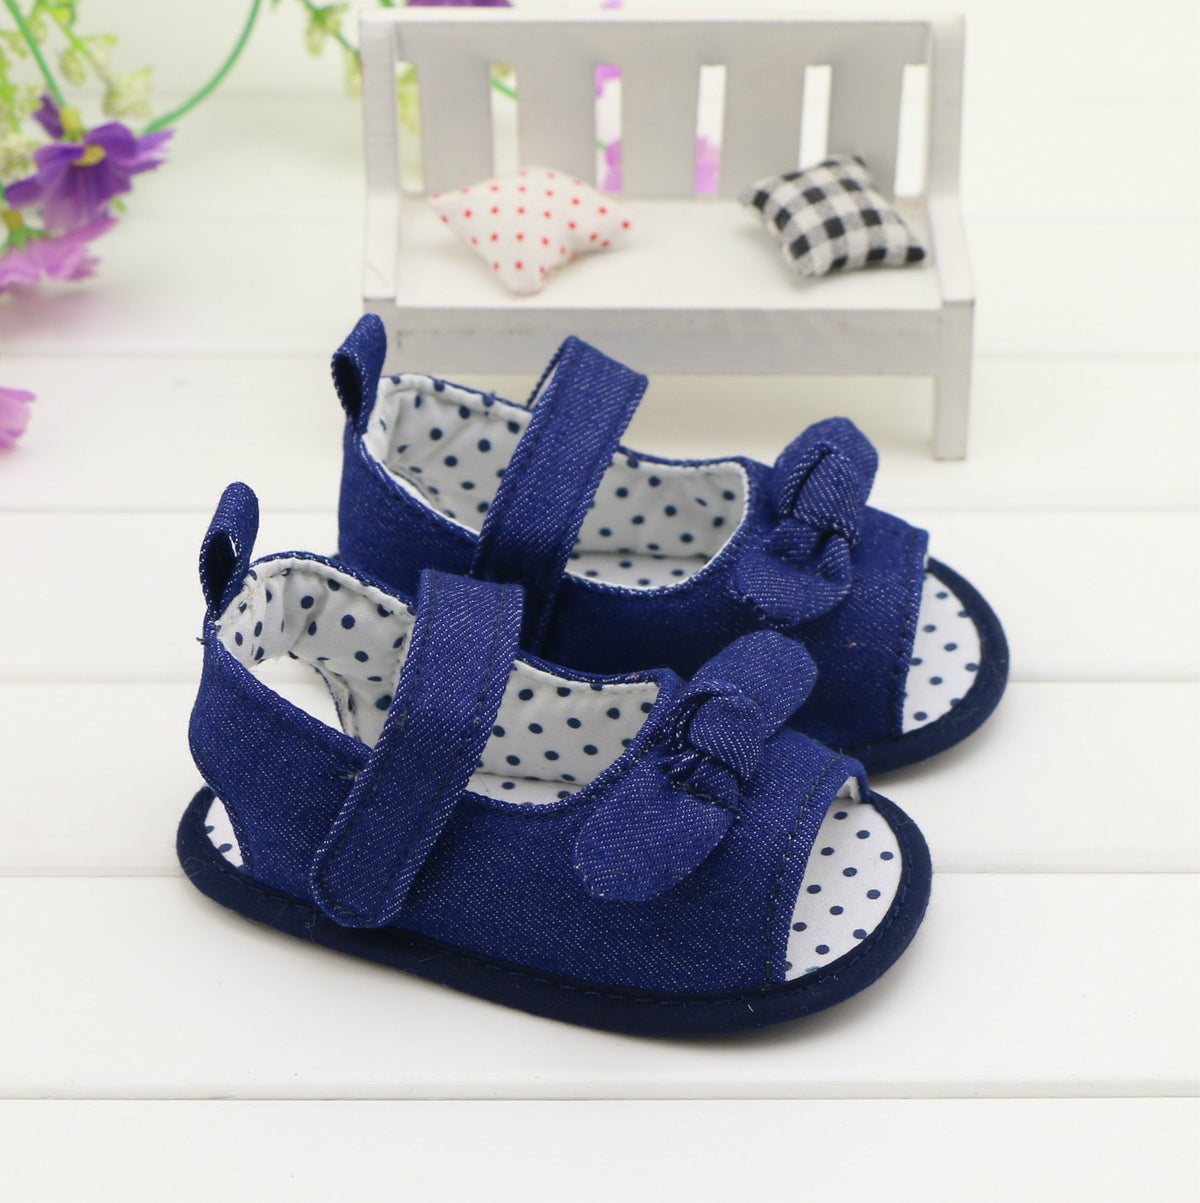 Baby First Walkers Baby Shoes Cute Soft Bottom Toddler Shoes for Kids